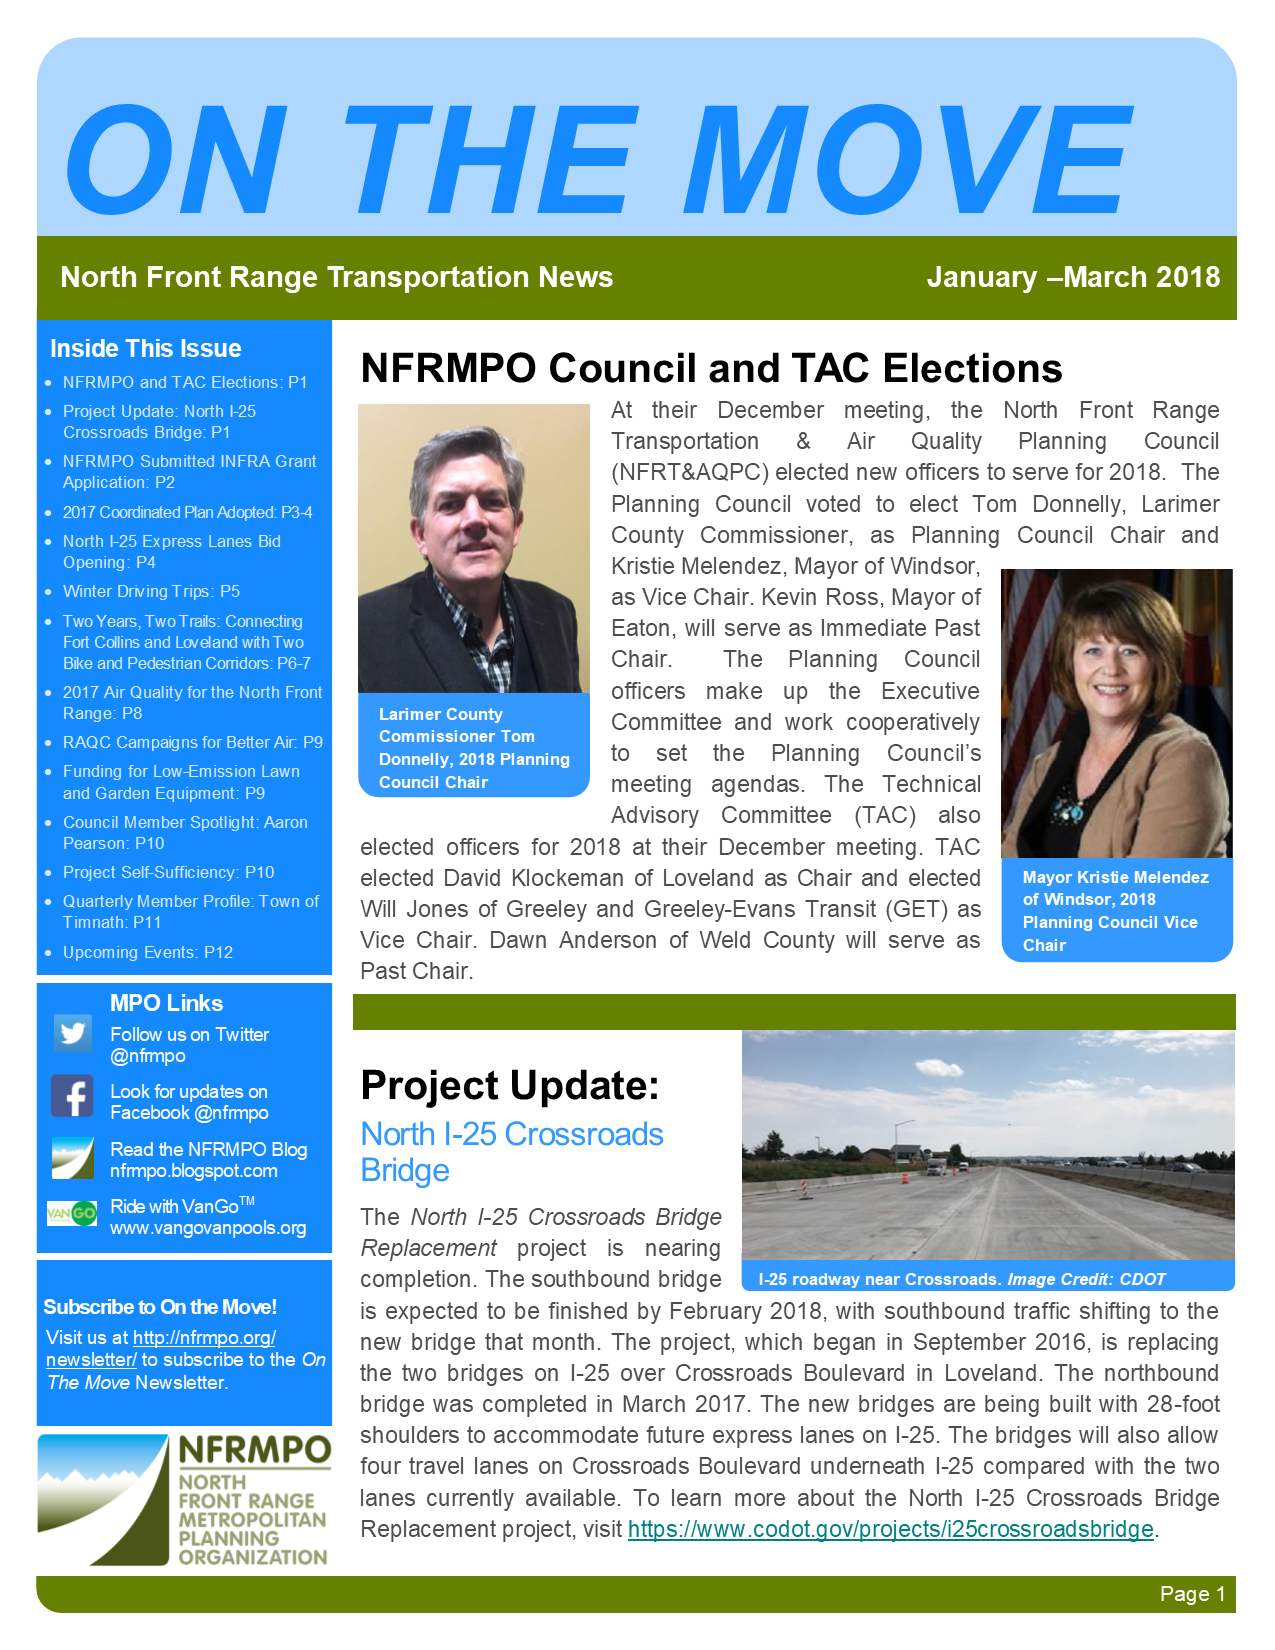 First page of On The Move Newsletter, January-March 2018 edition